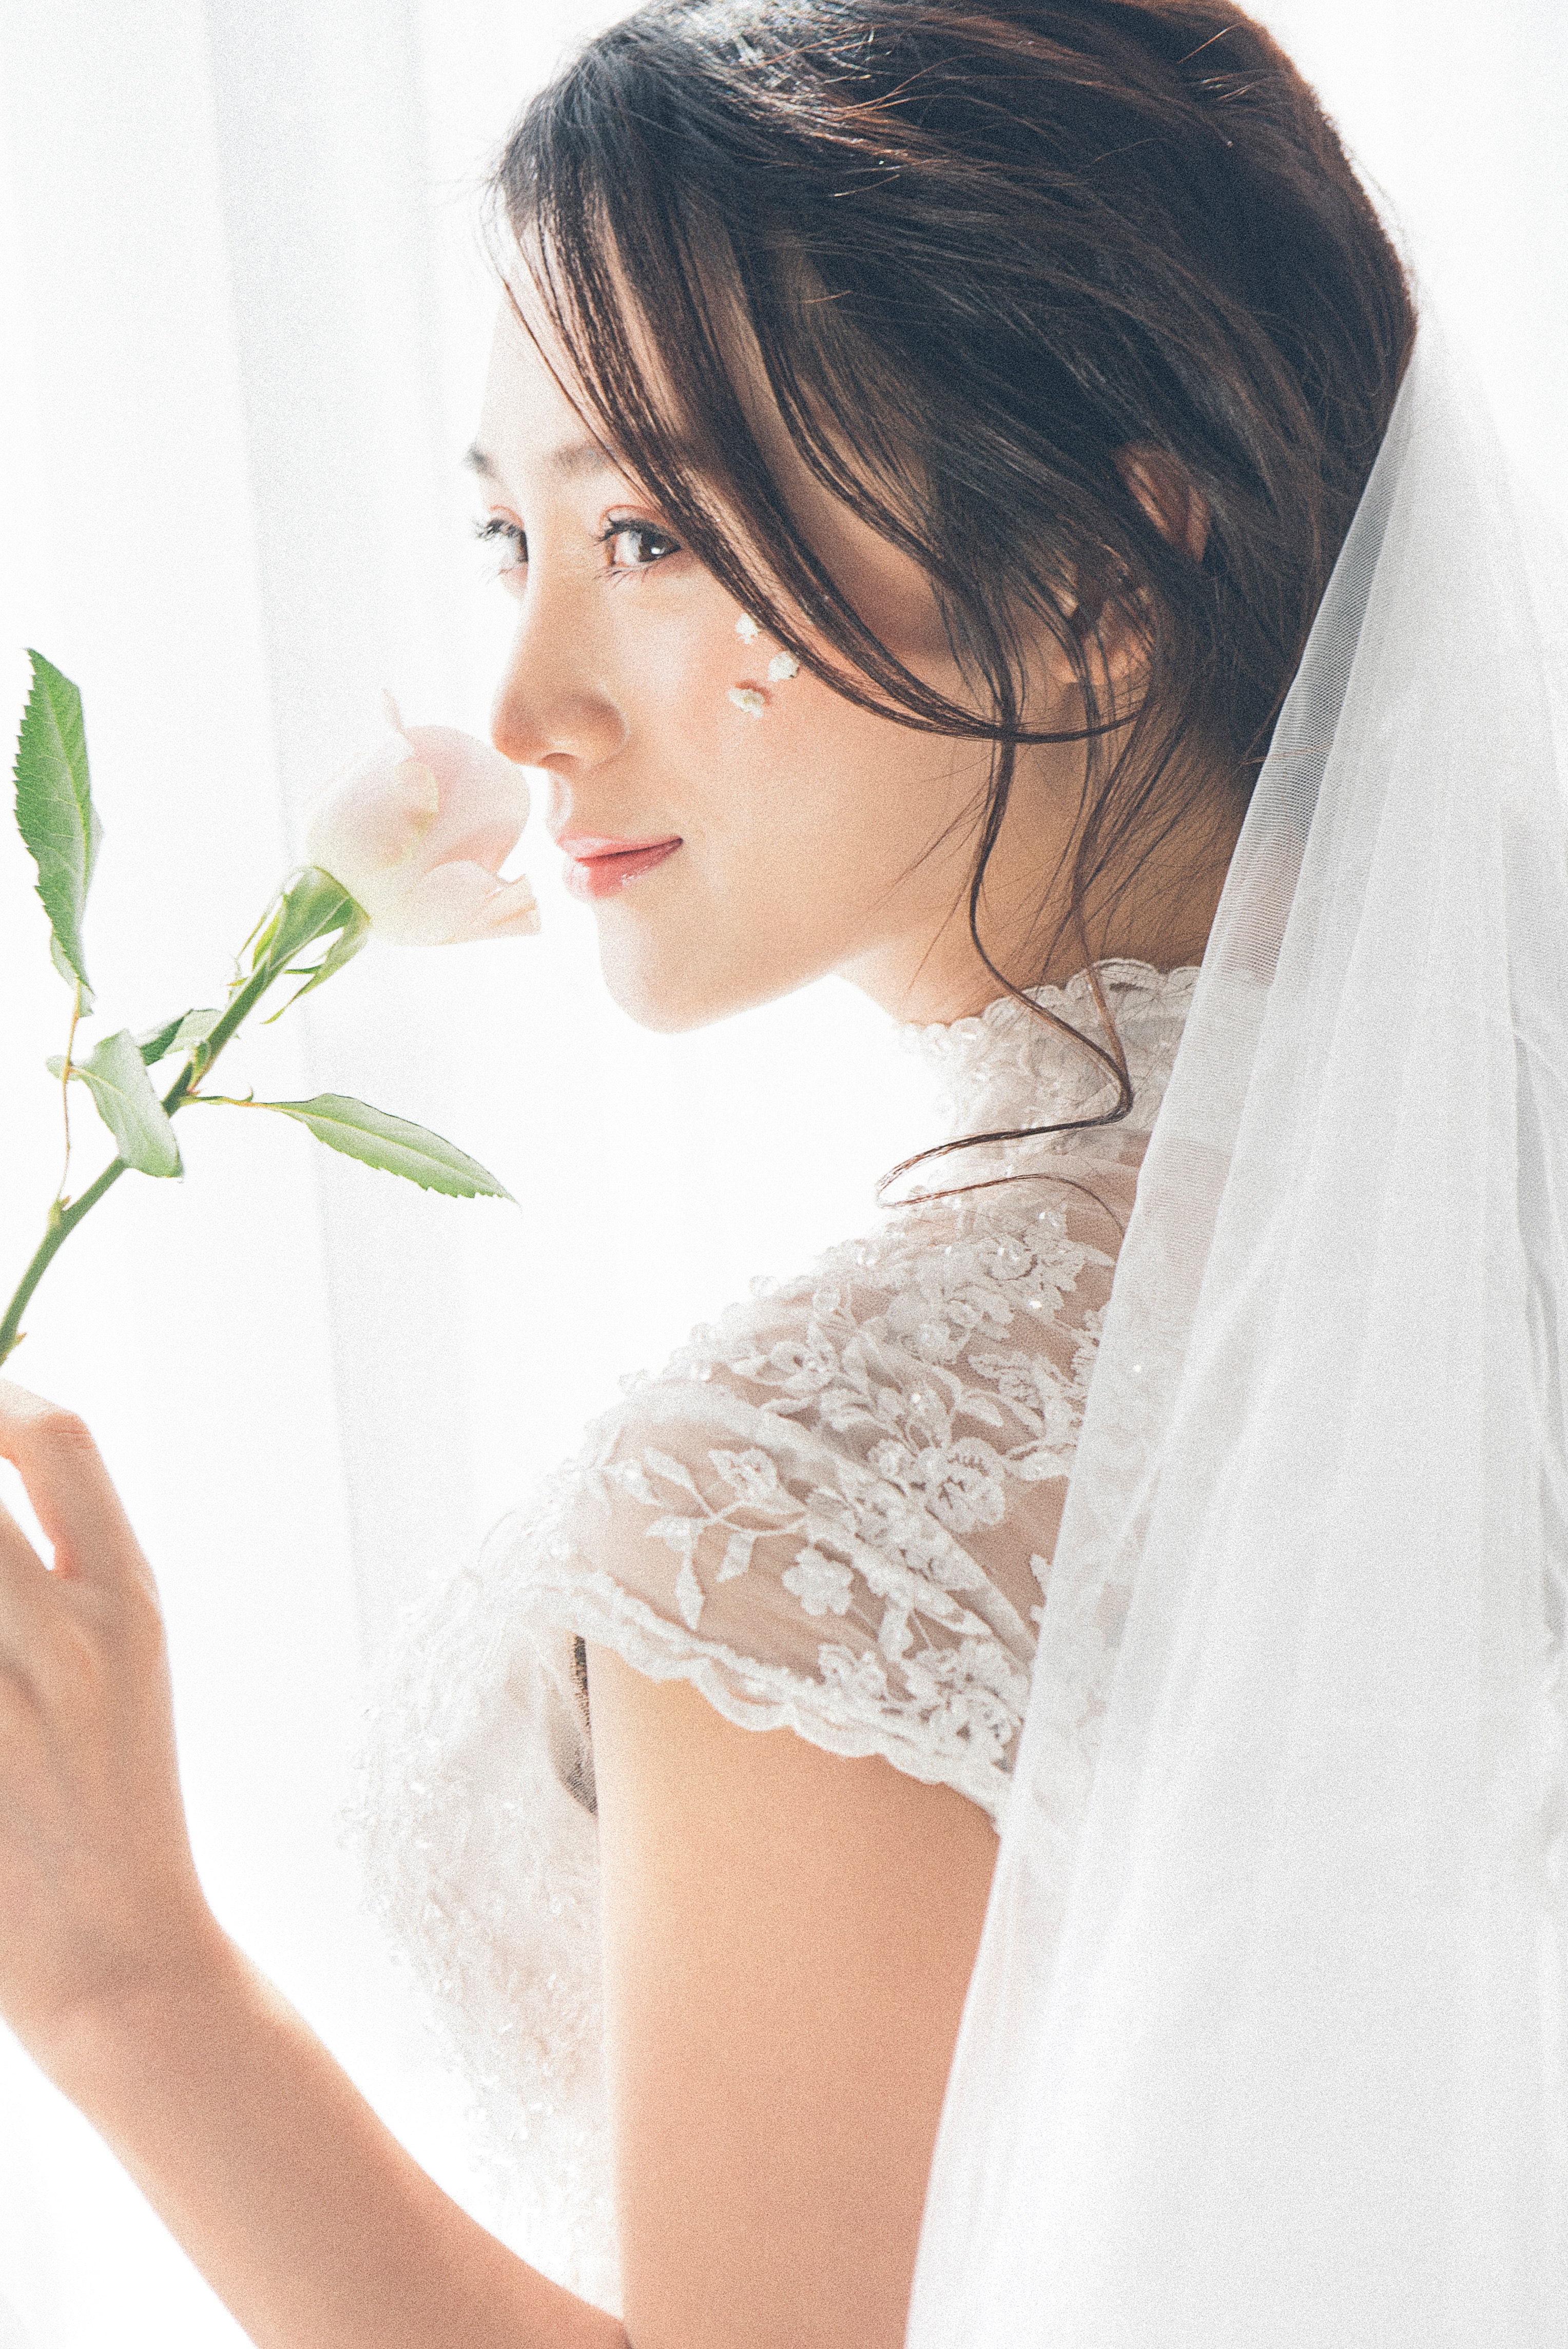 Free photo: Woman Wearing White Lace Encrusted Wedding Gown and Veil ...